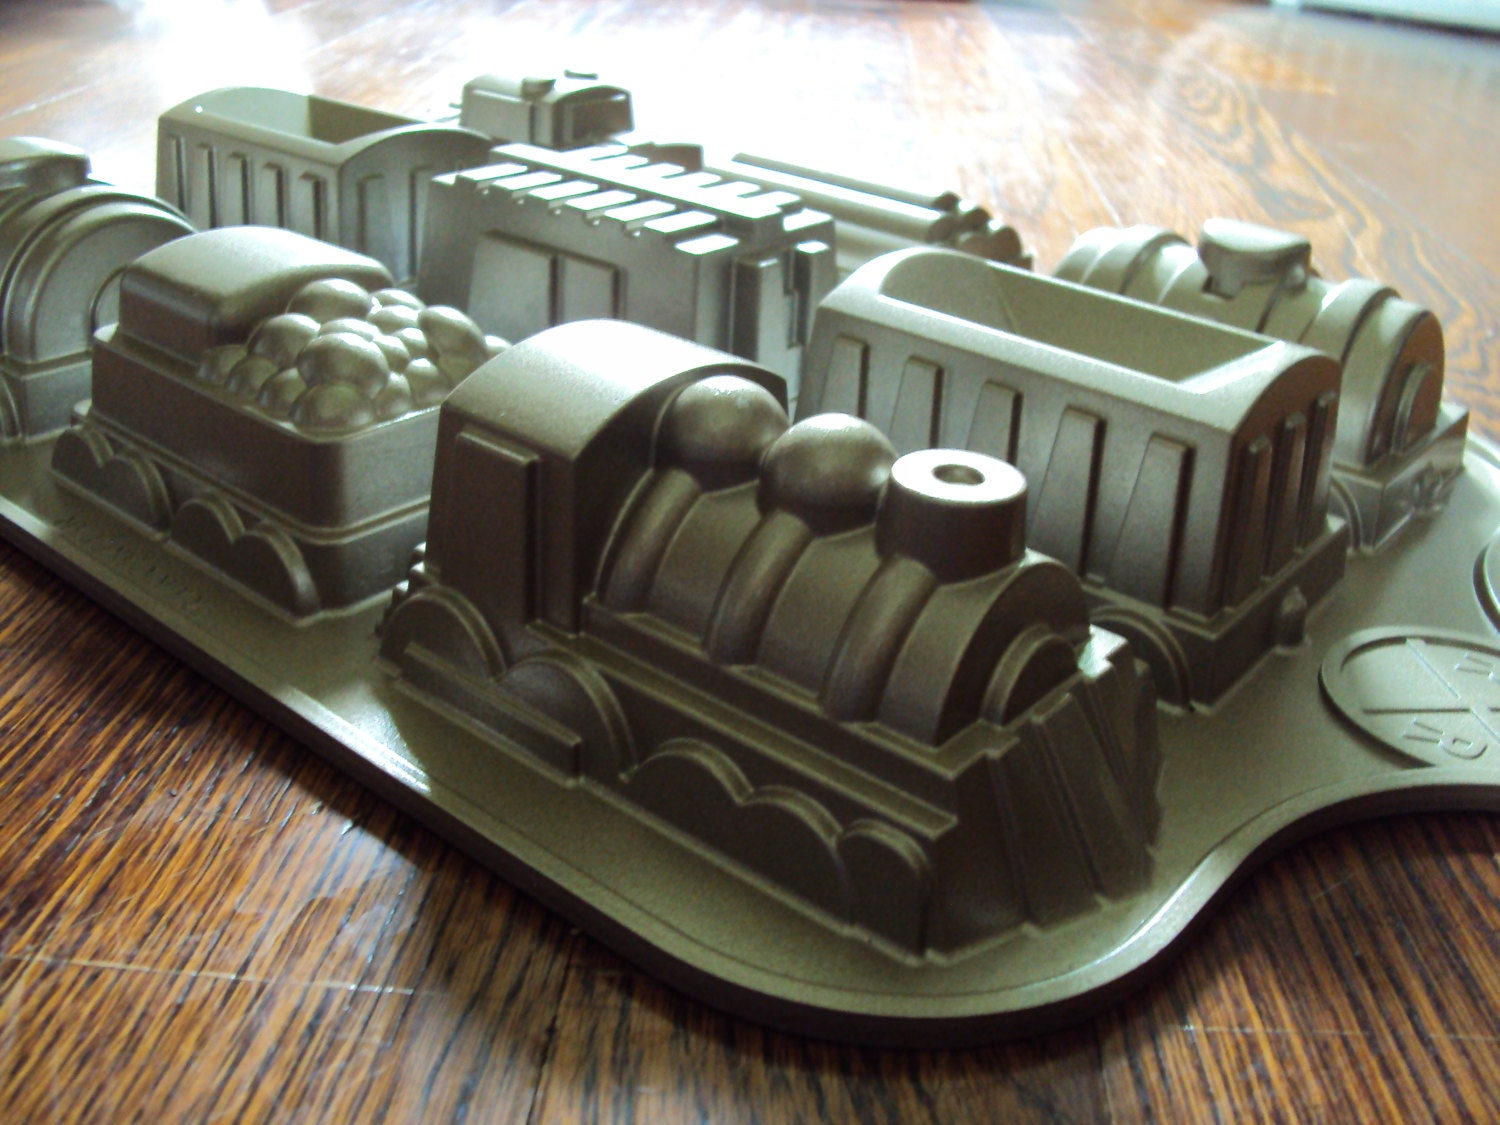 Nordicware Train Cake Mold / Pan